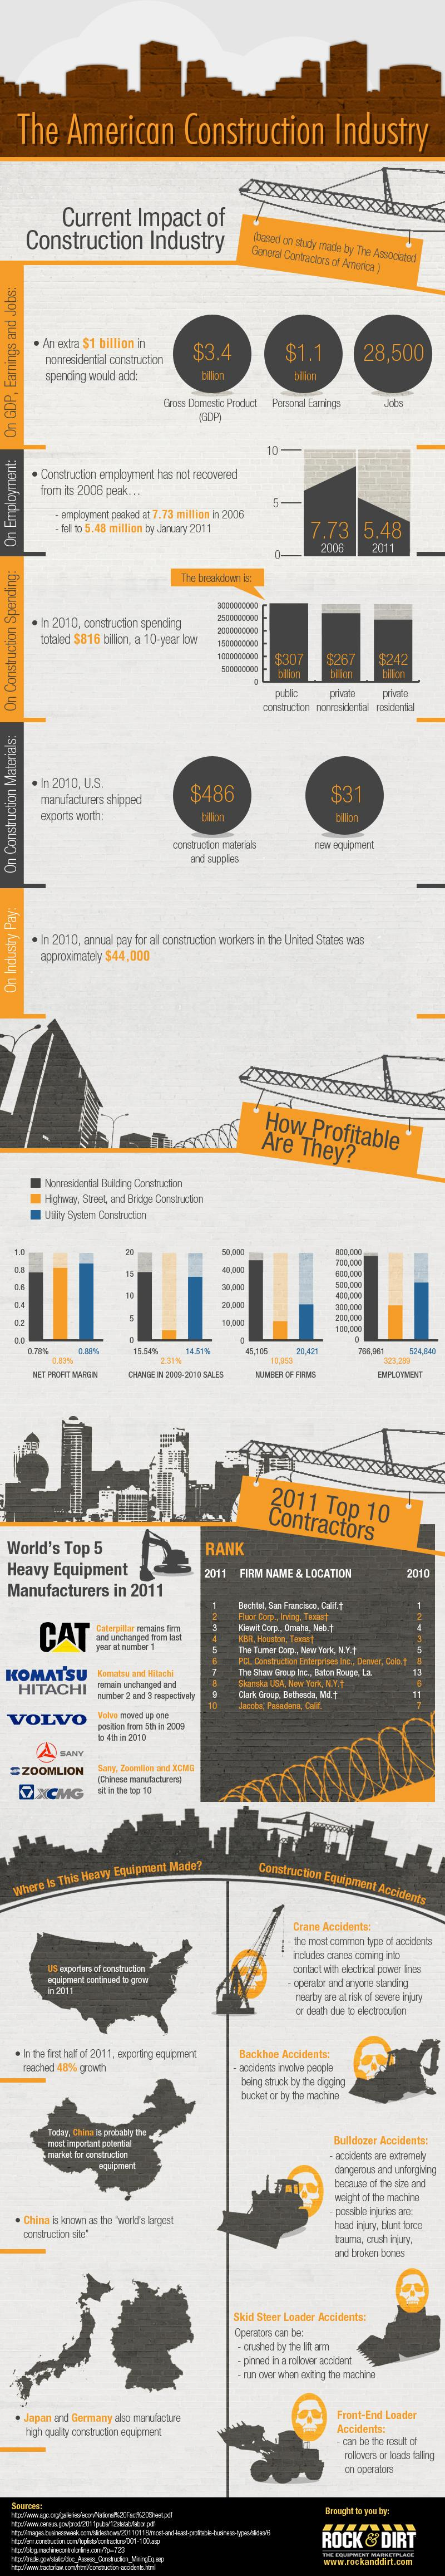 Top Construction Companies and Industry Statistics